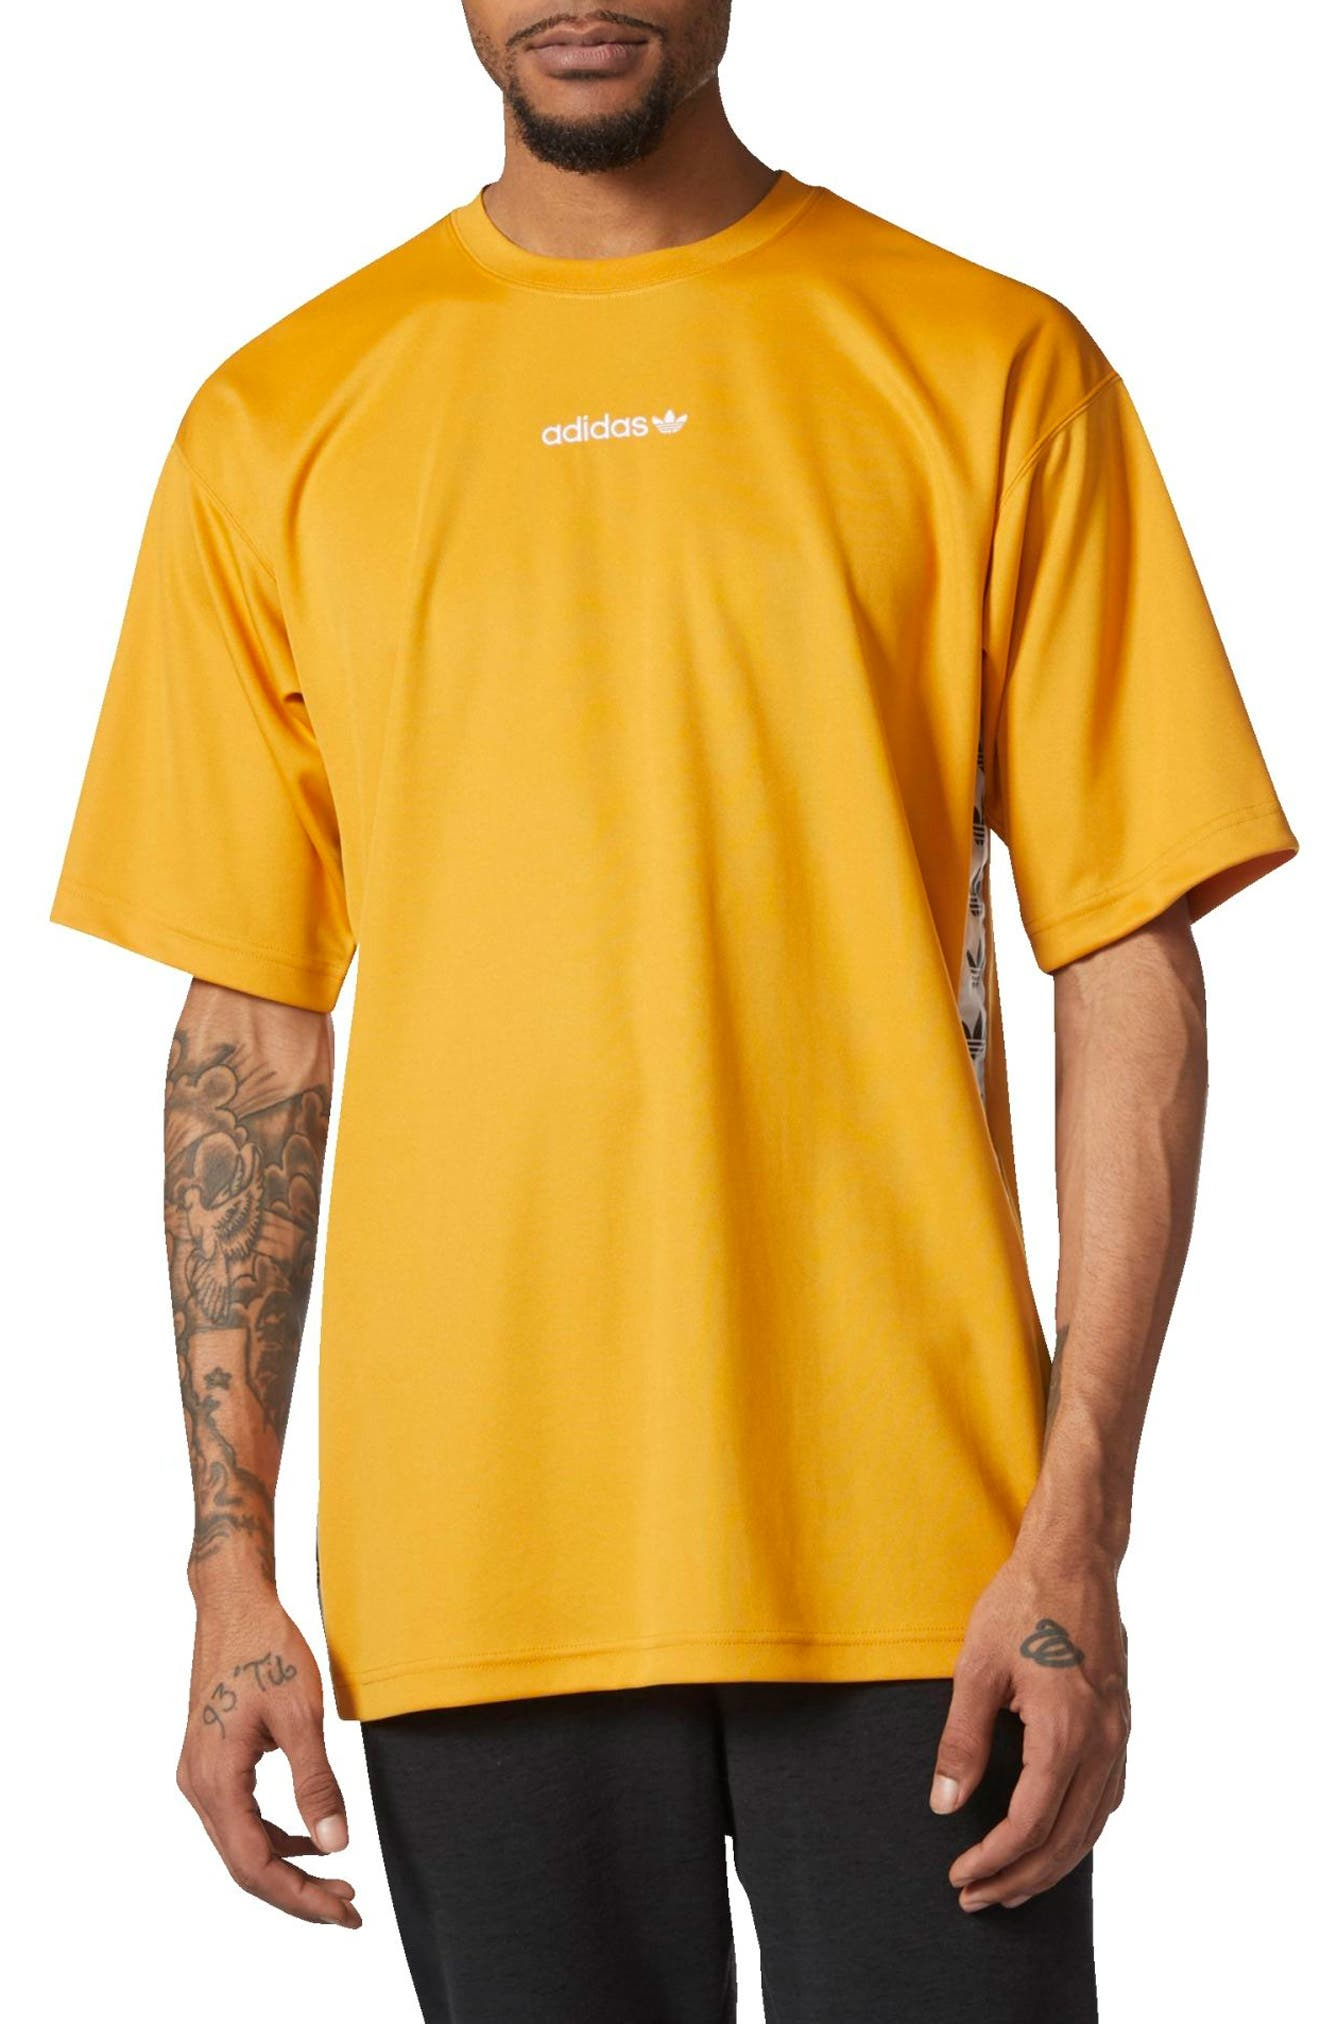 adidas Originals TNT Tape T-Shirt